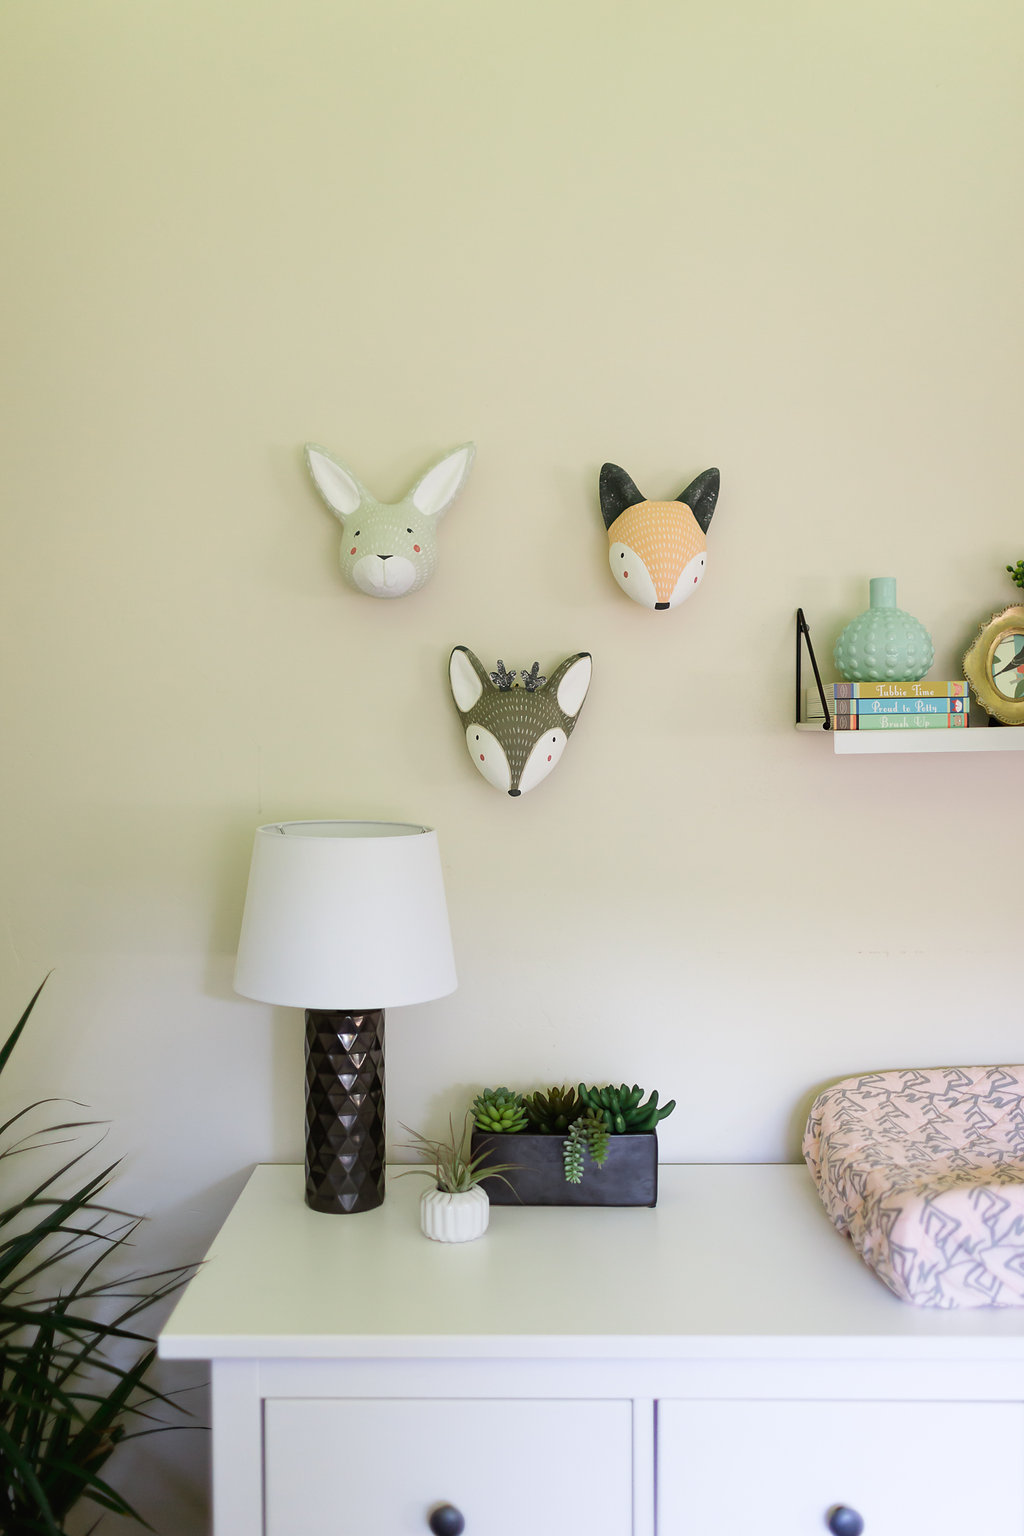 Whimsical Eclectic Nursery Dresser Vignette with Whimsical Animal Heads